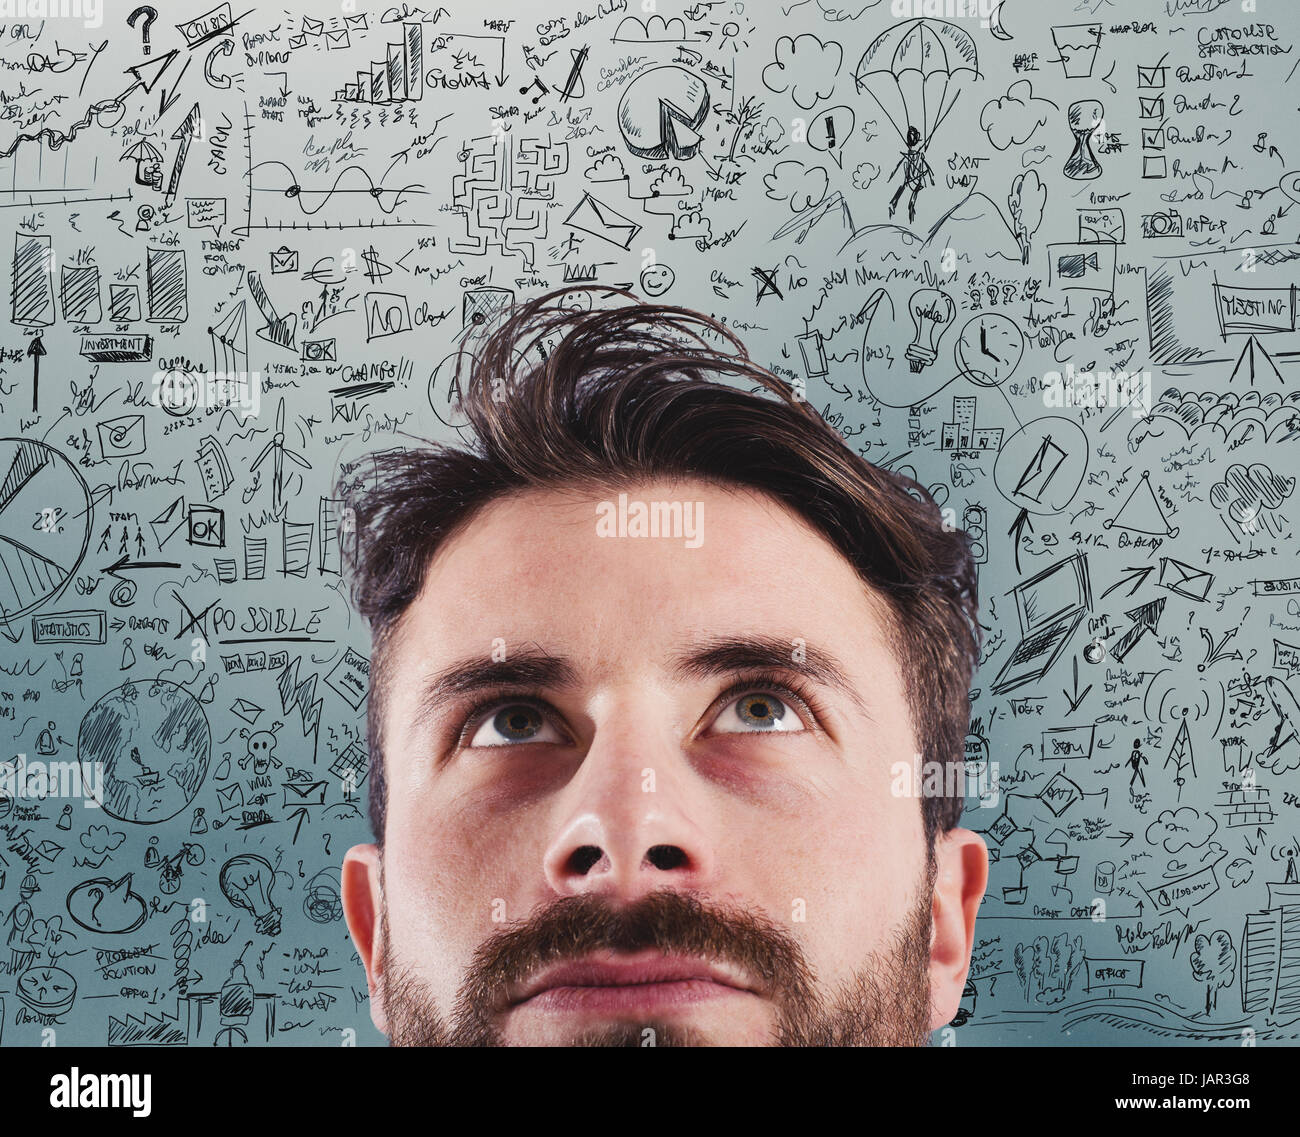 New business creative idea of a project - Stock Image